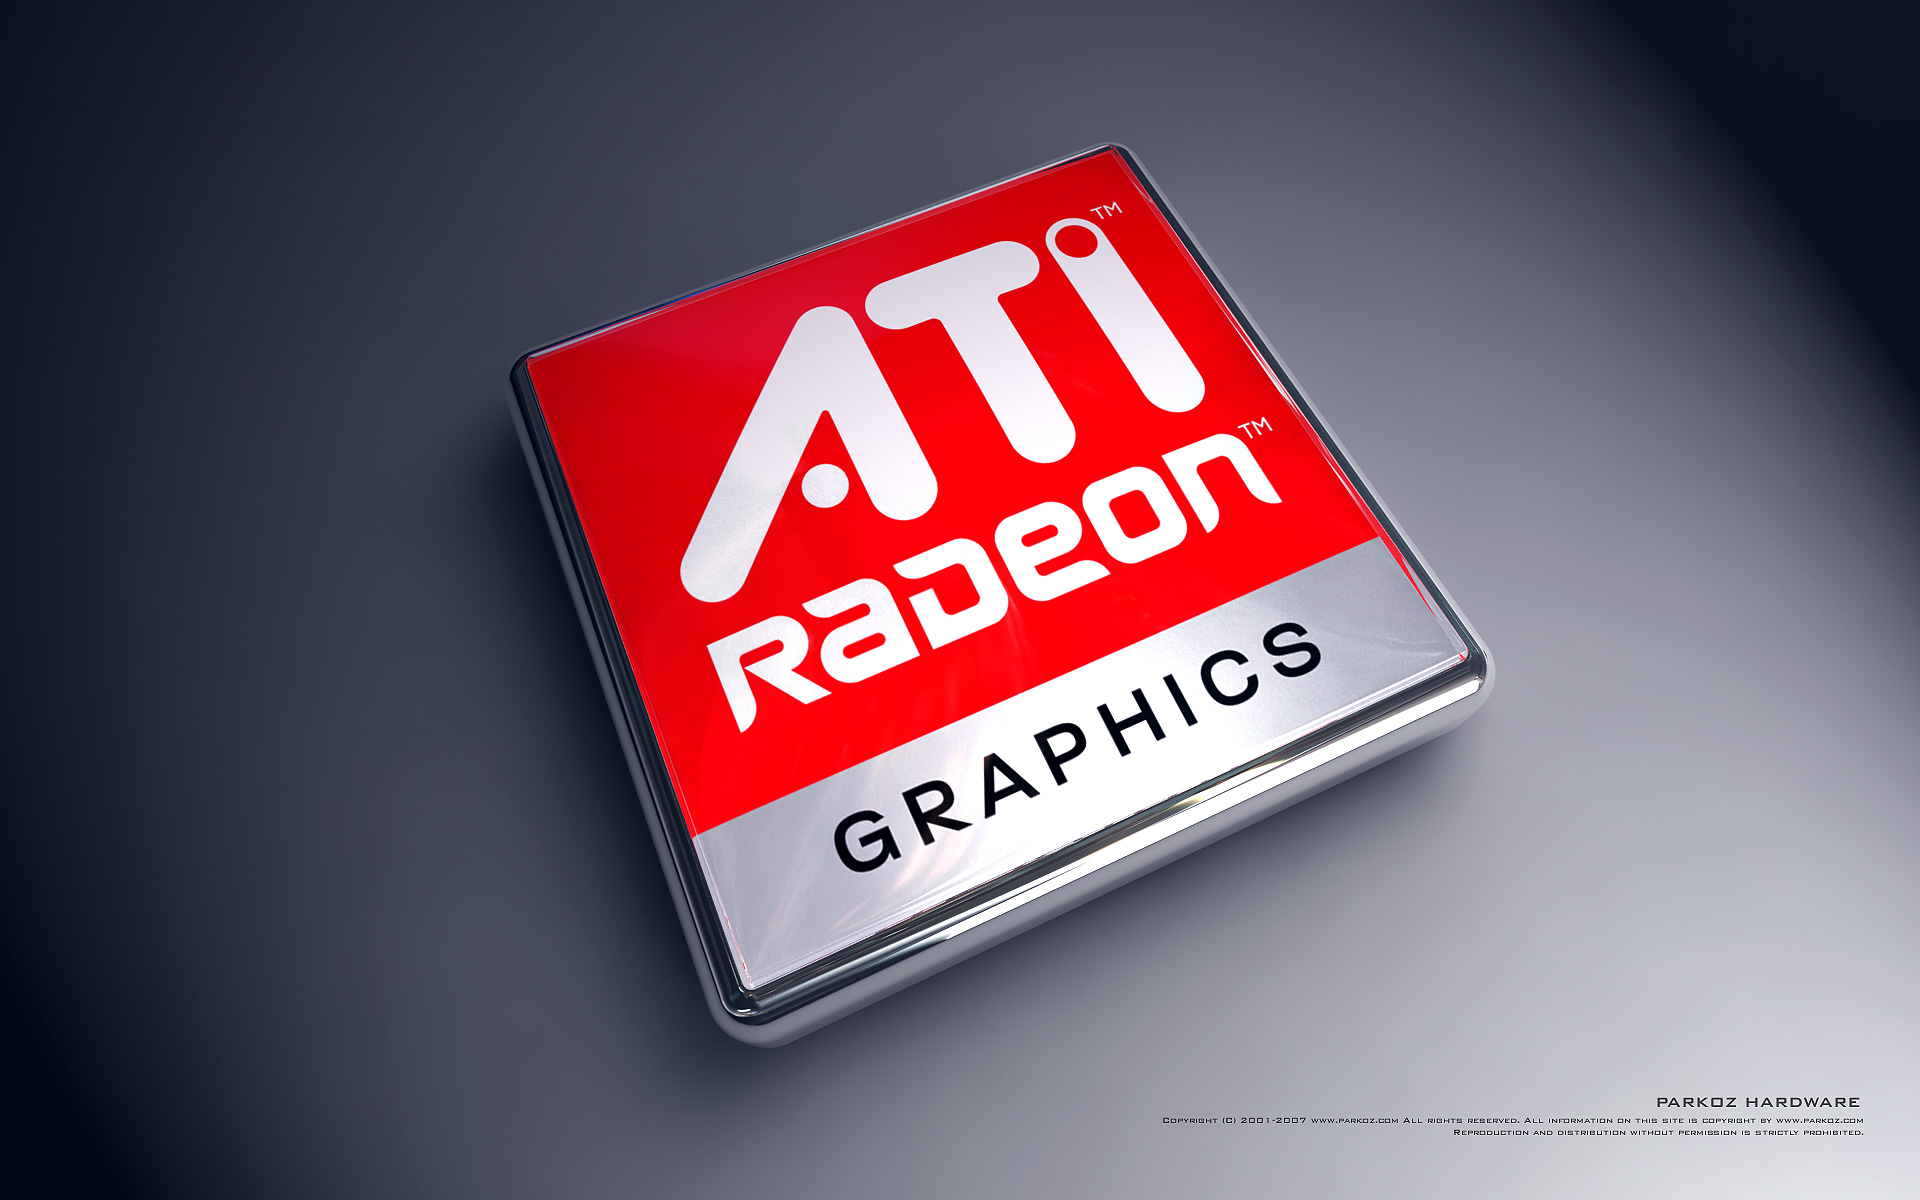 Ati Radeon Graphics 696.26 Kb